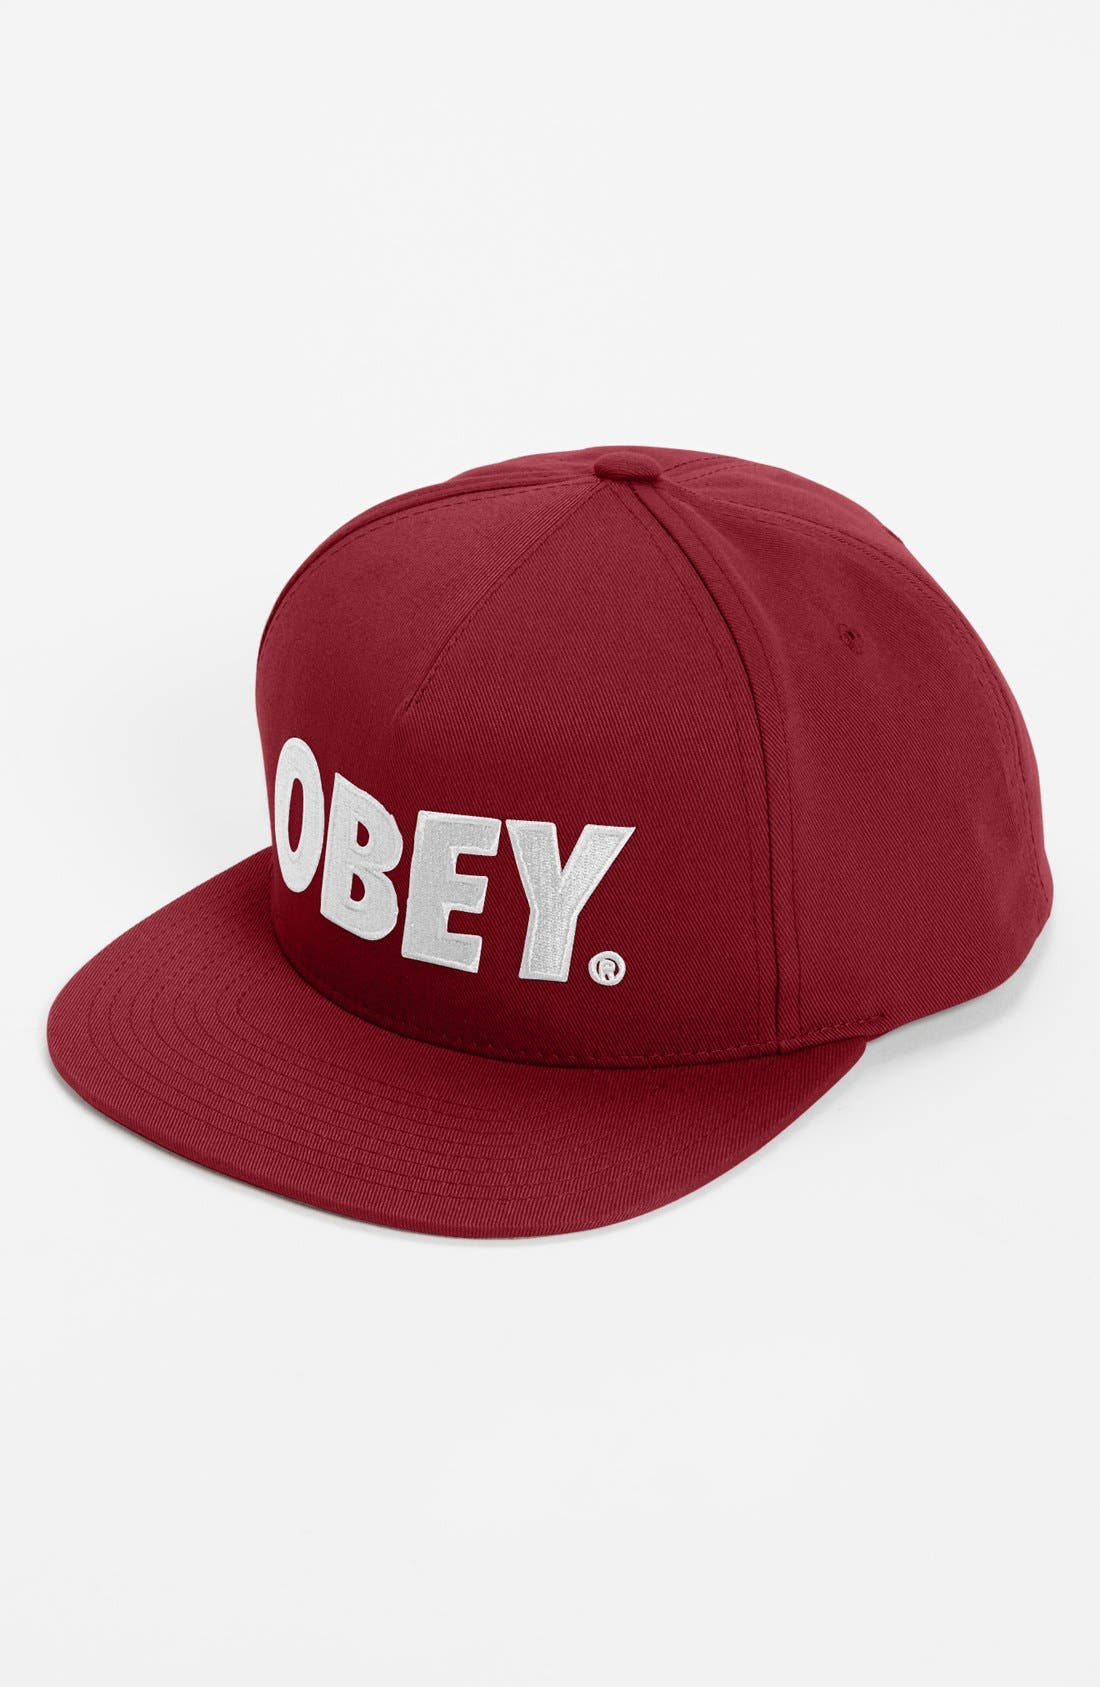 Alternate Image 1 Selected - Obey 'The City' Snapback Cap